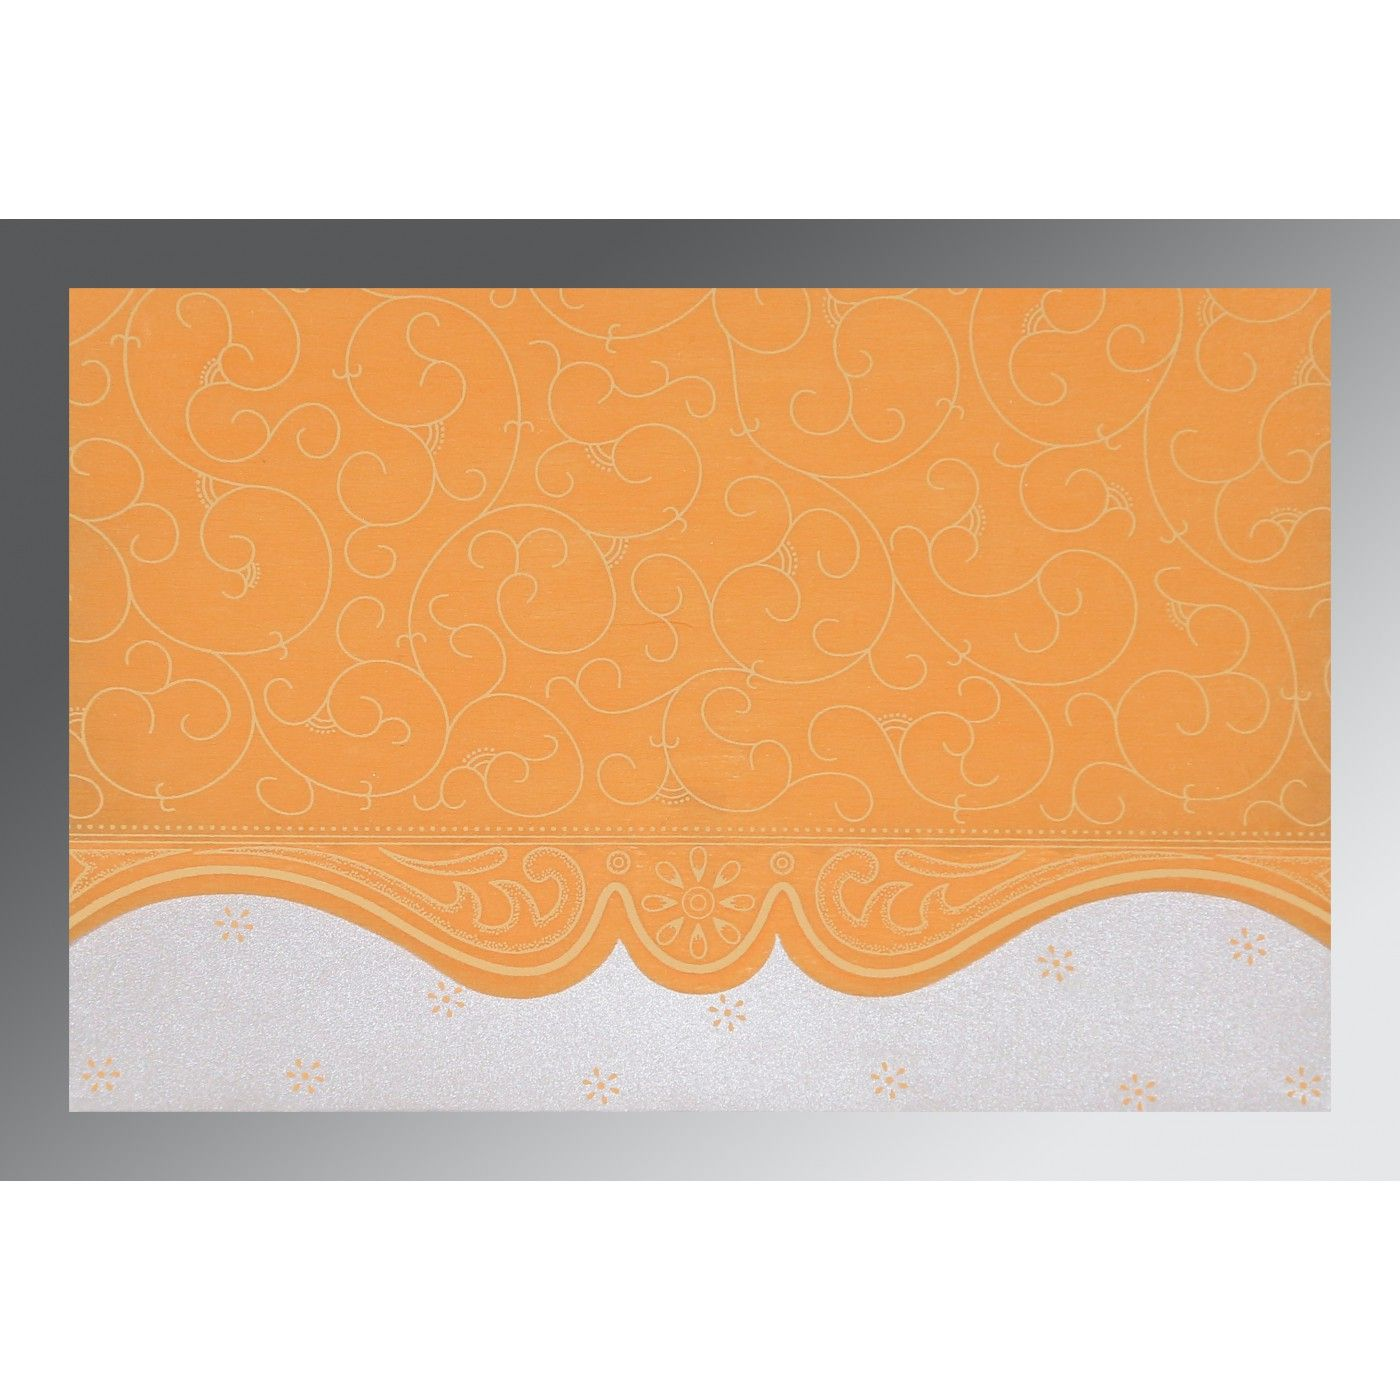 VIVID ORANGE MATTE EMBOSSED WEDDING INVITATION : CD-8221F - IndianWeddingCards